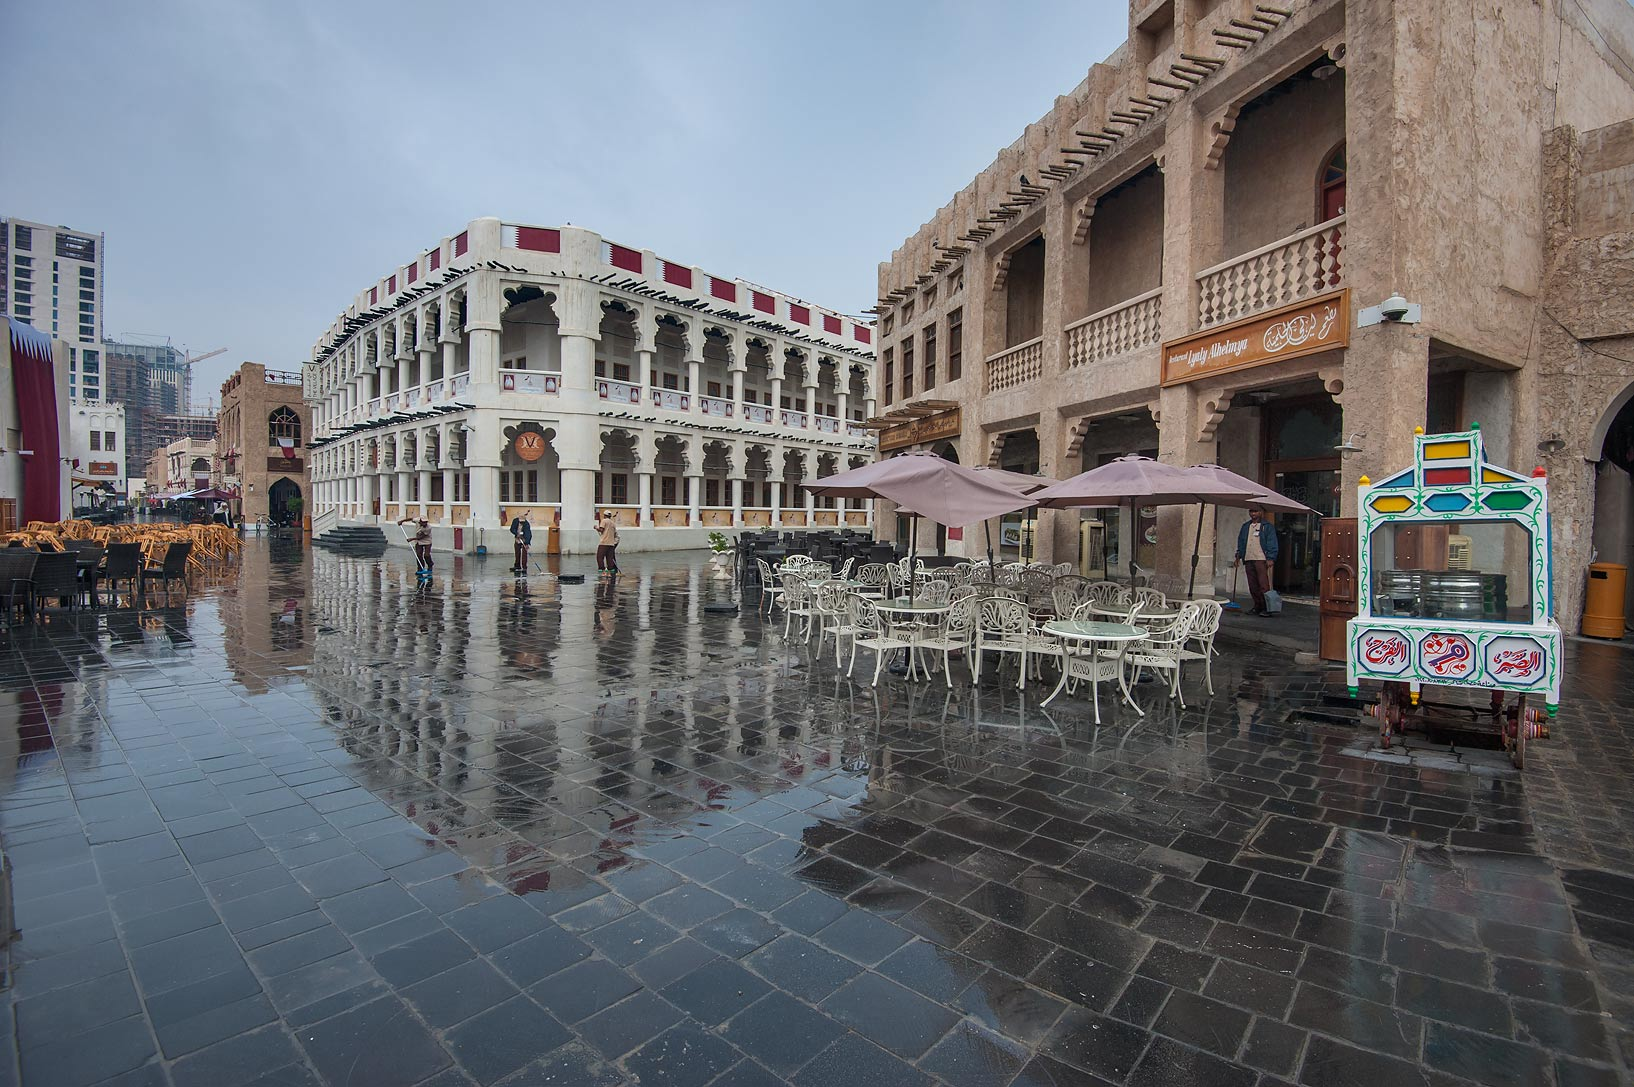 Stone pavement in Souq Waqif market at rain. Doha, Qatar